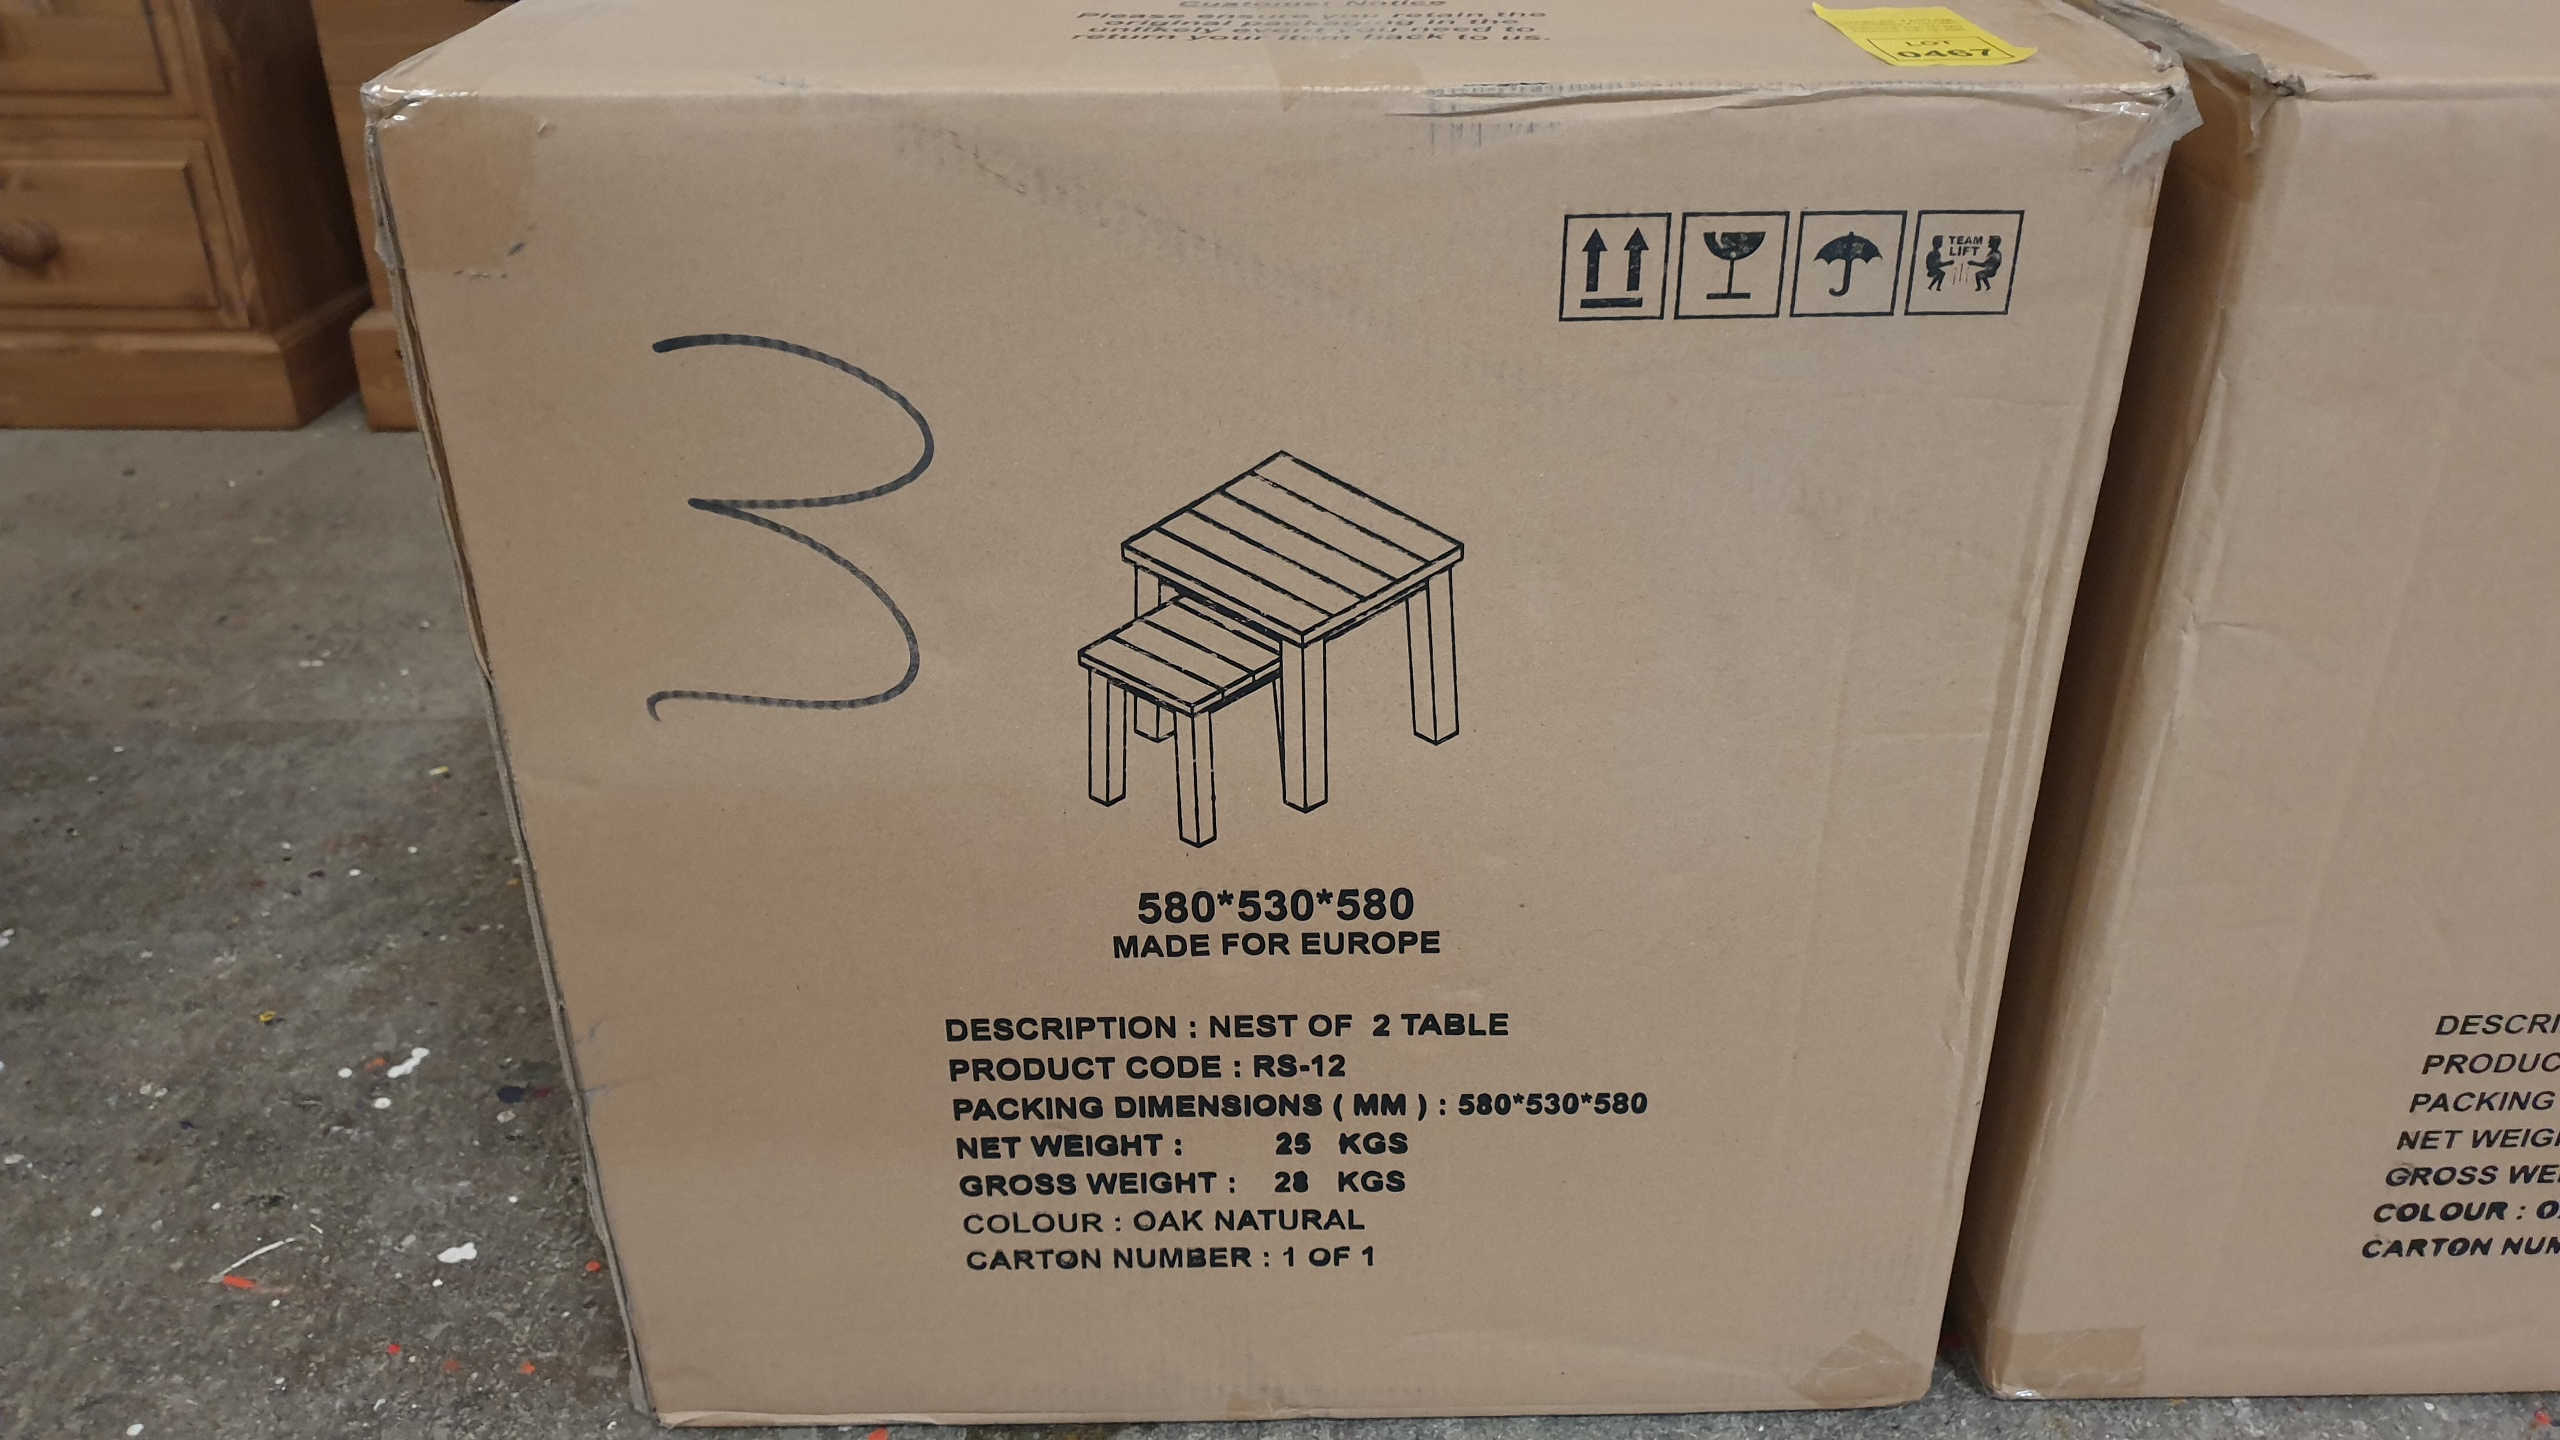 Lote 466 - BRAND NEW BOXED NEST OF 2 TABLES